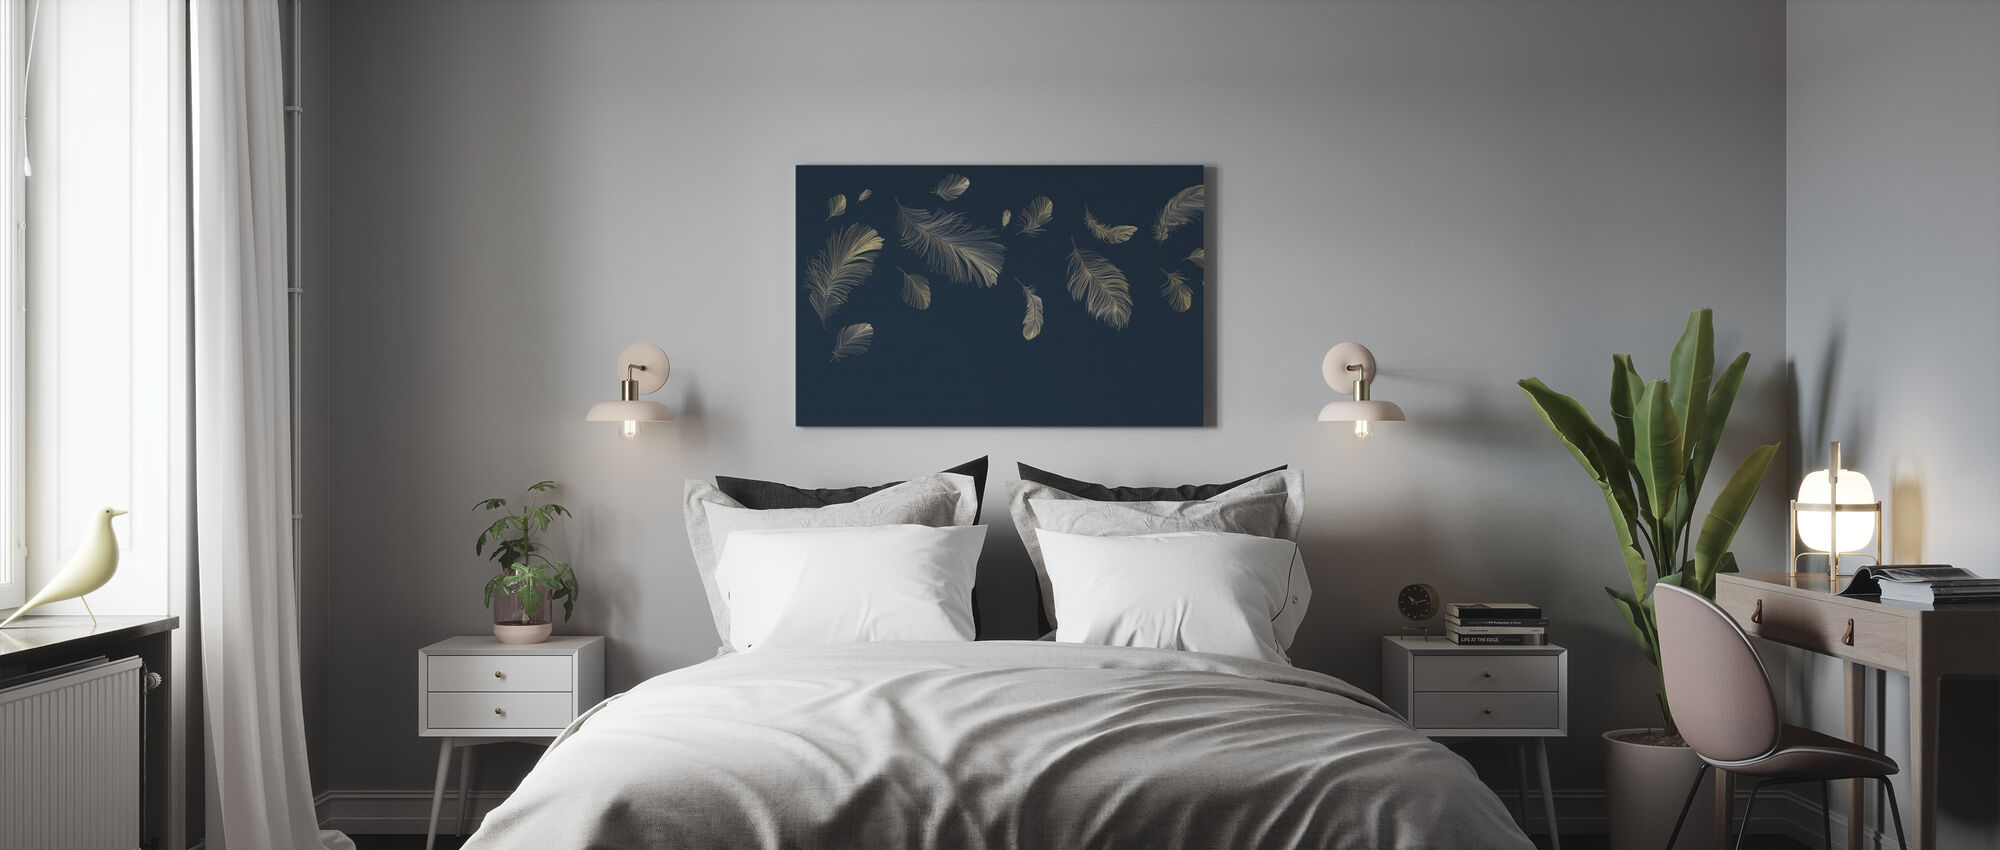 Flying Feathers - Blue - Canvas print - Bedroom